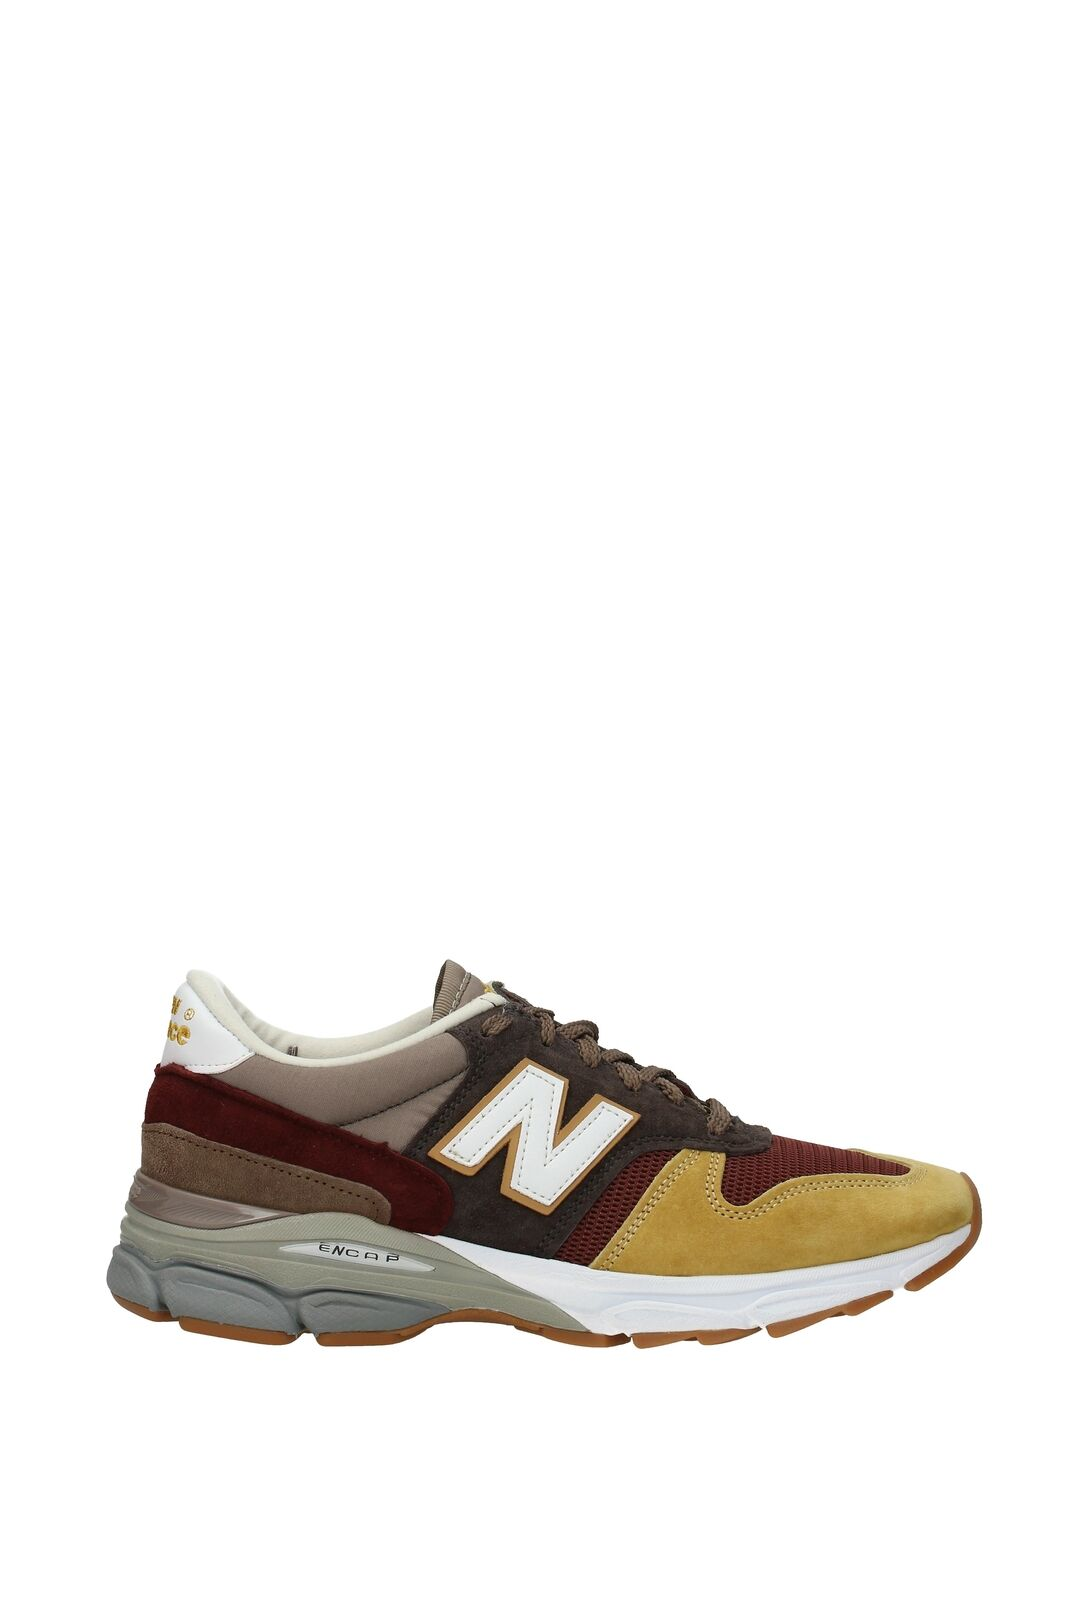 Sneakers New Balance running Men - Suede (TESSUTOCAMOSCIOM7709)